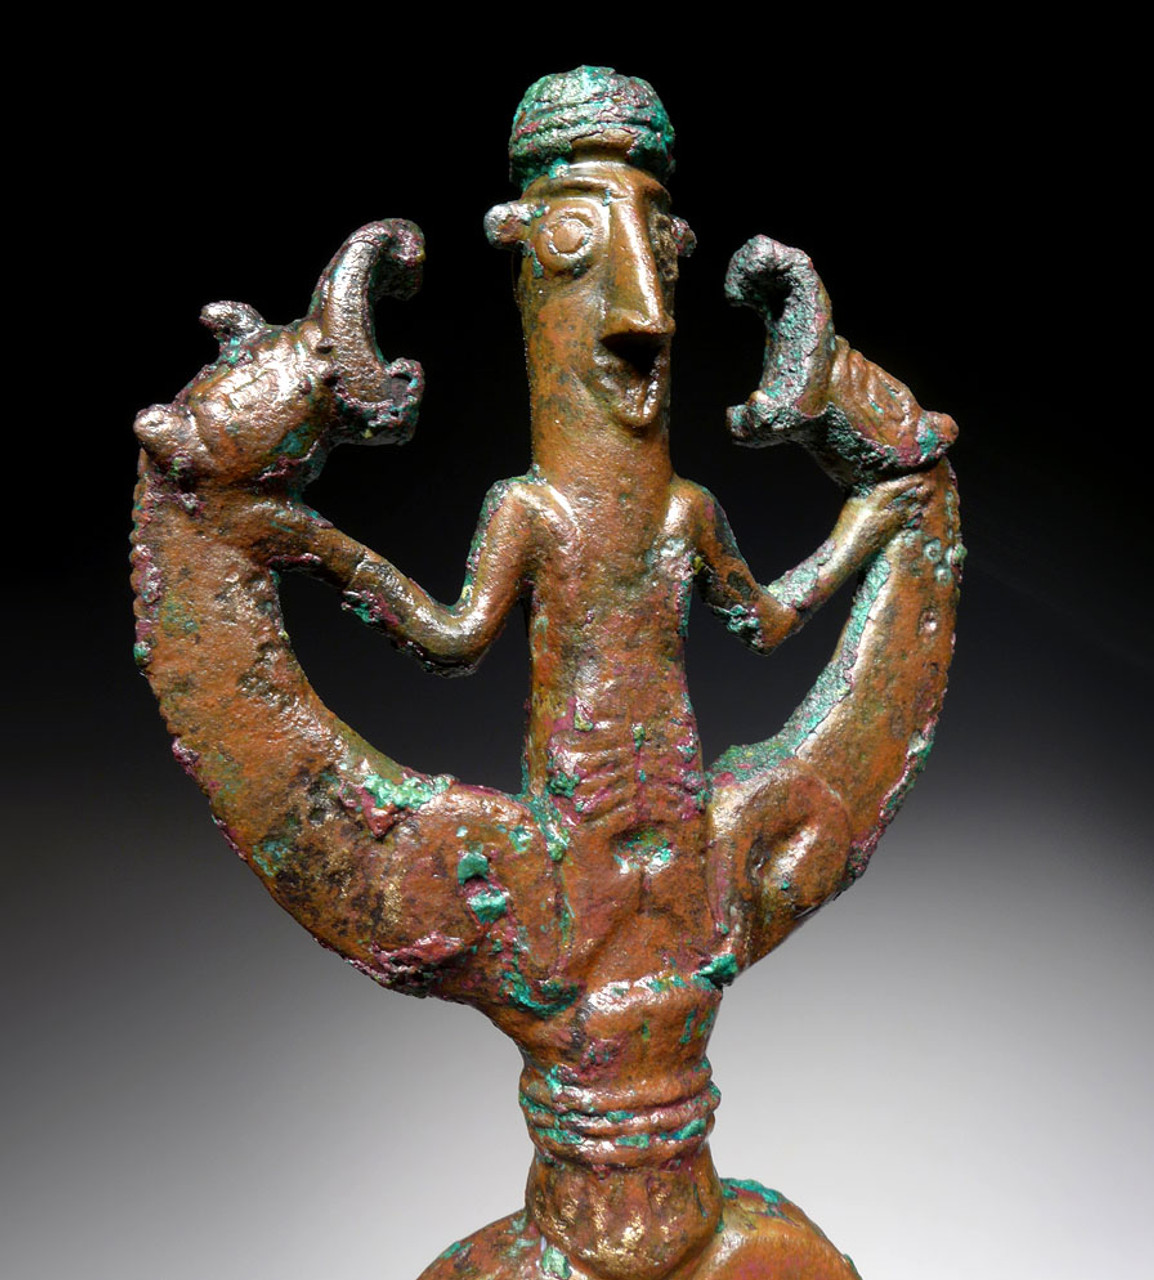 LARGE BRONZE ANCIENT ART MASTER OF ANIMALS IDOL FINIAL FIGURE FROM NEAR EASTERN LURISTAN  *LUR183